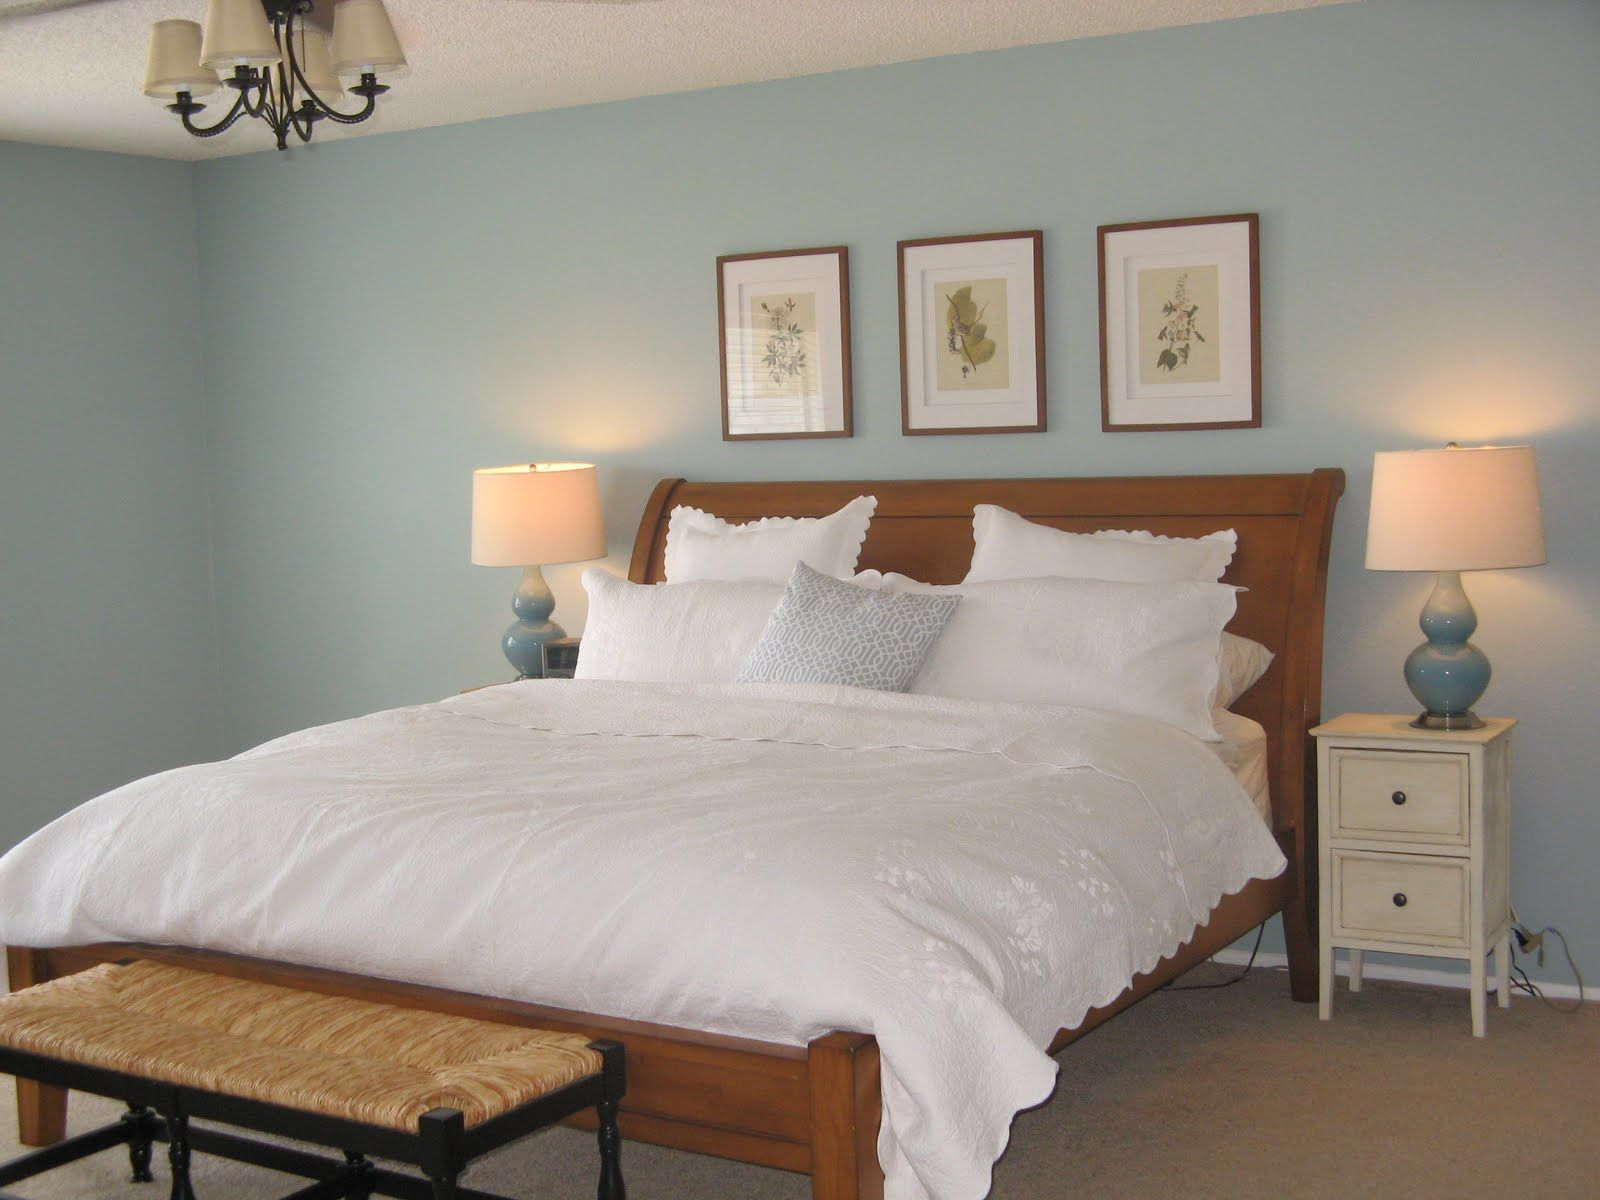 Benjamin moore paint san diego - Benjamin Moore Gossamer Blue Is A Timeless Mid Tone Color That Soft And Subtle Gossamer Blue Evokes The Mellow Relaxed Feeling Of Faded Blue Jeans And